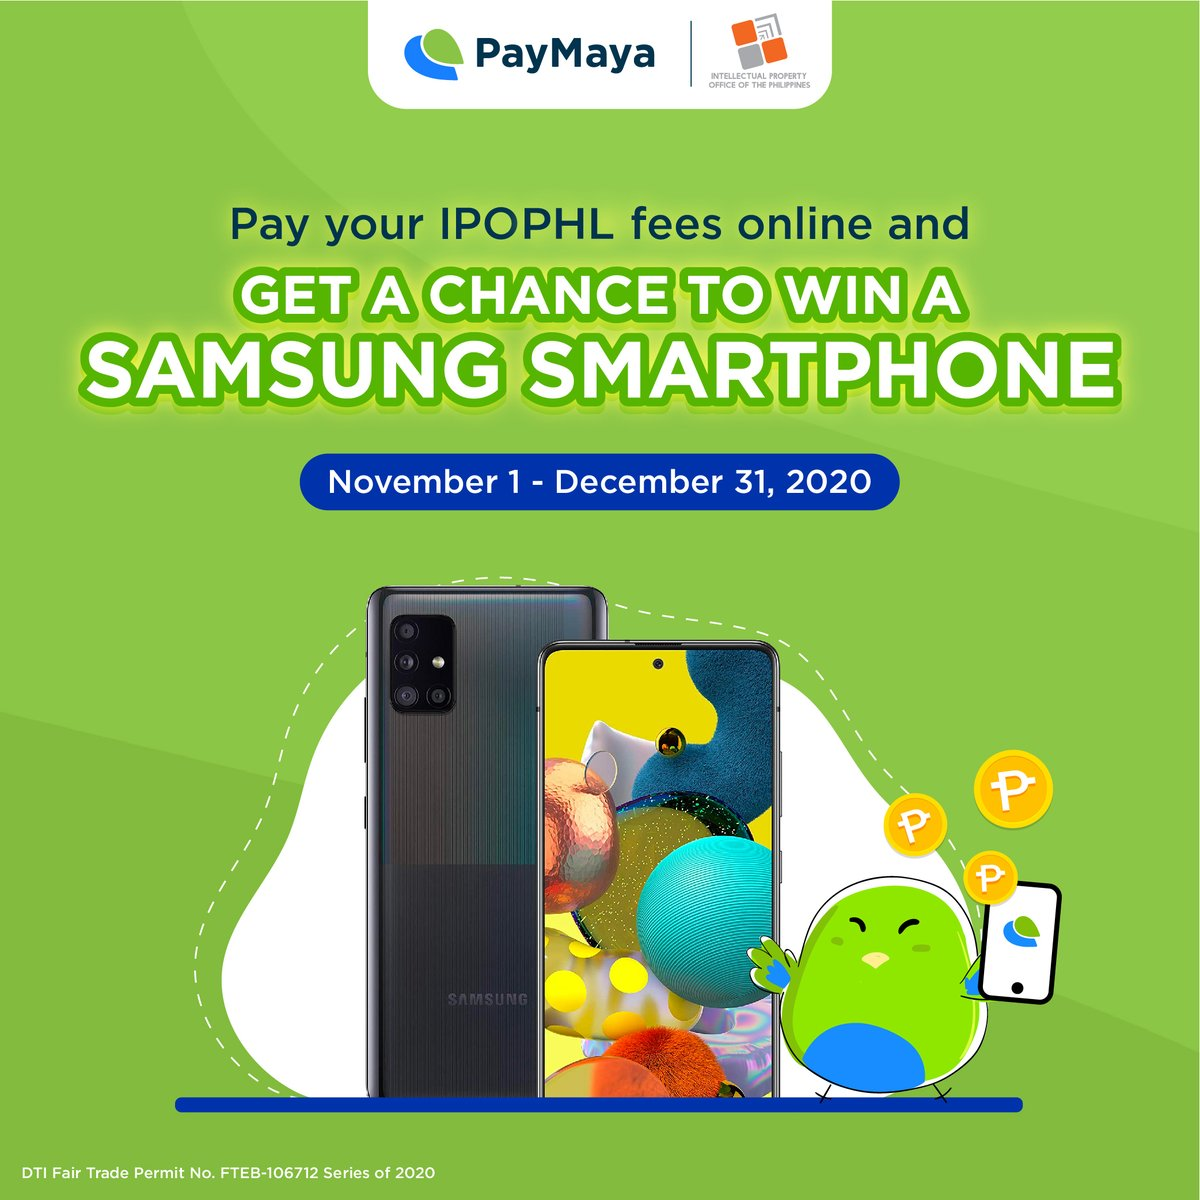 Settle your IPOPHL fees online using @PayMayaOfficial  and get a chance to win a Samsung Galaxy A51 smartphone!  #ScanToPay with PayMaya QR or #PayWithYourNumber at  Promo runs from November 1 to December 31, 2020.